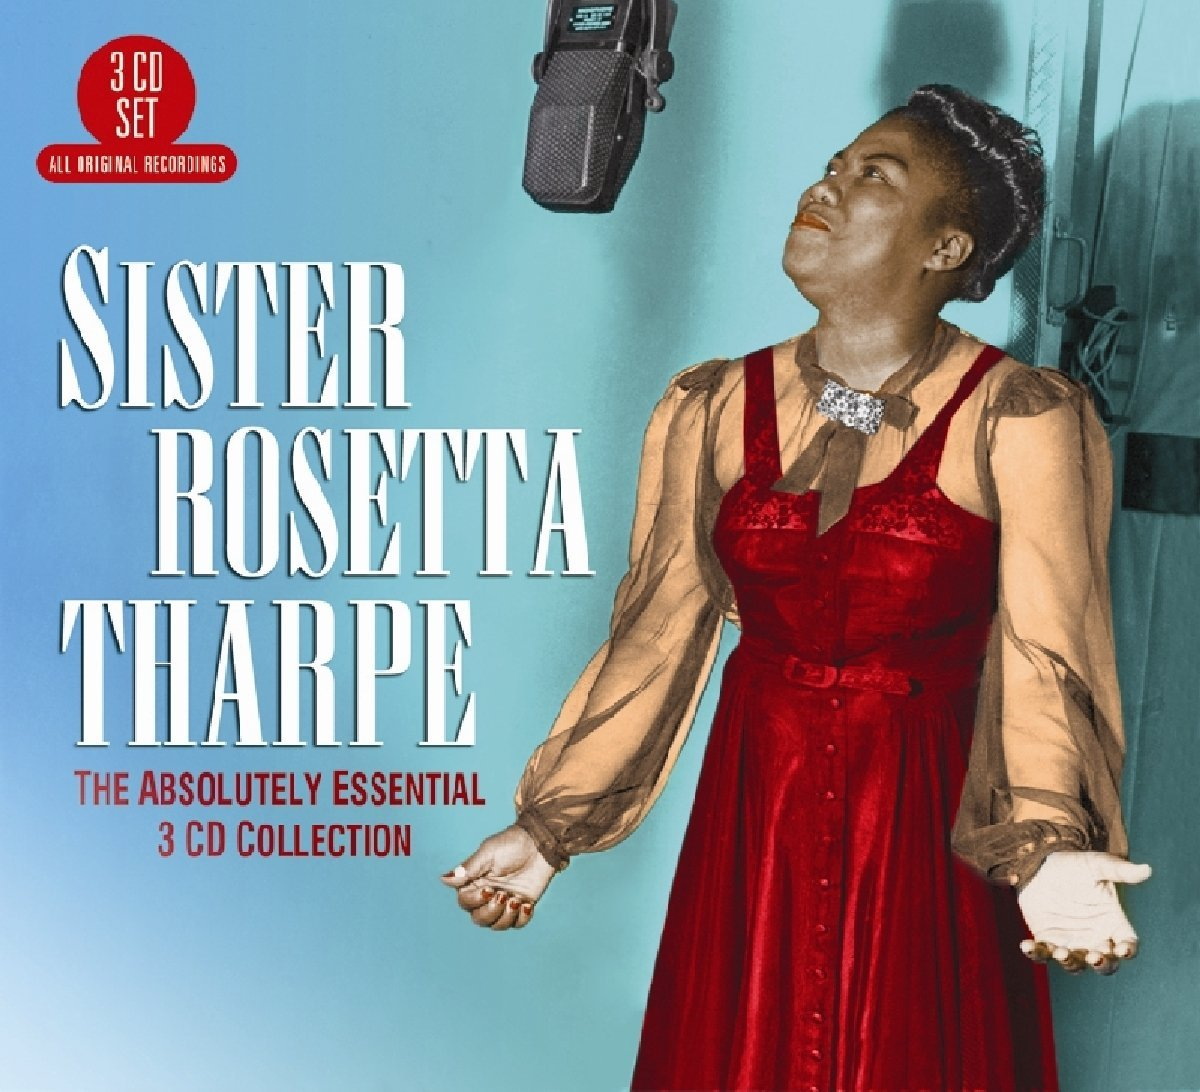 SISTER ROSETTA THARPE: The Absolutely Essential 3 CD Collection